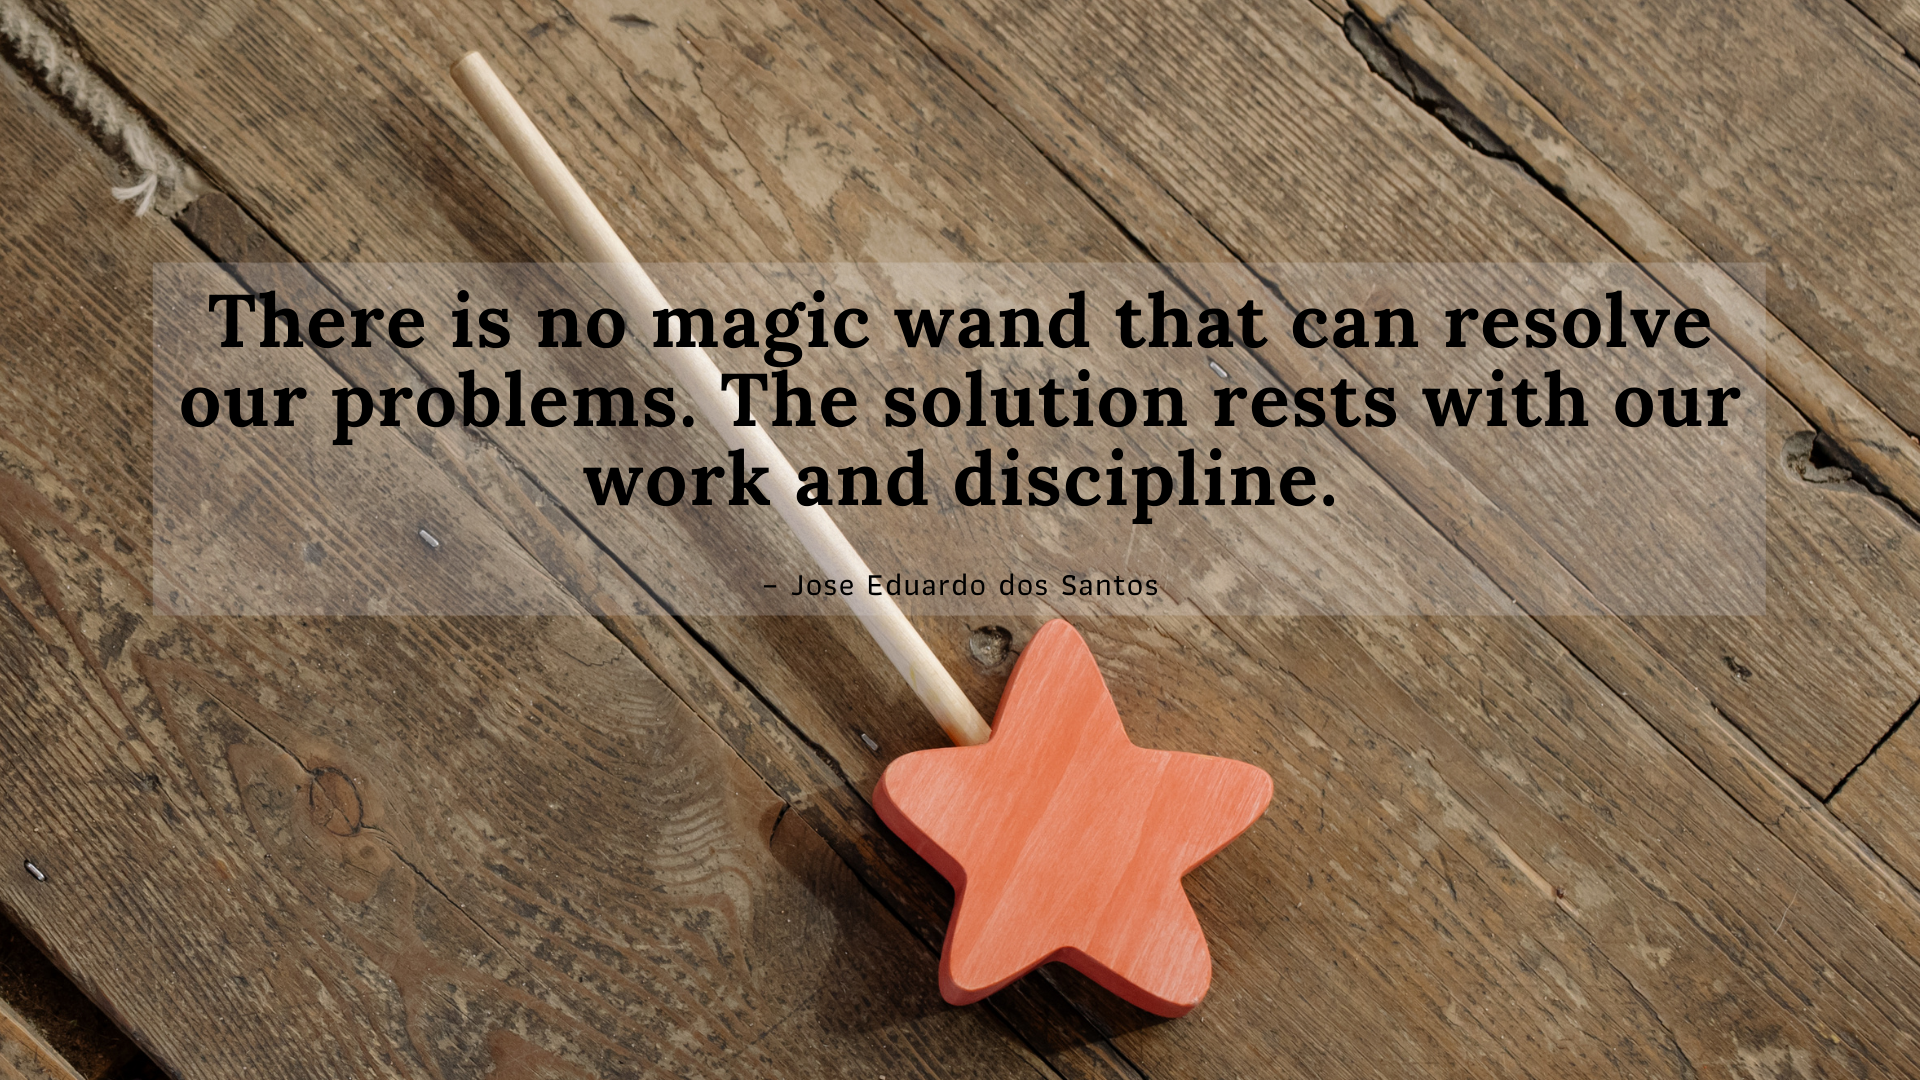 There is no magic wand that can resolve our problems. The solution rests with our work and discipline. – Jose Eduardo dos Santos[1920×1080]